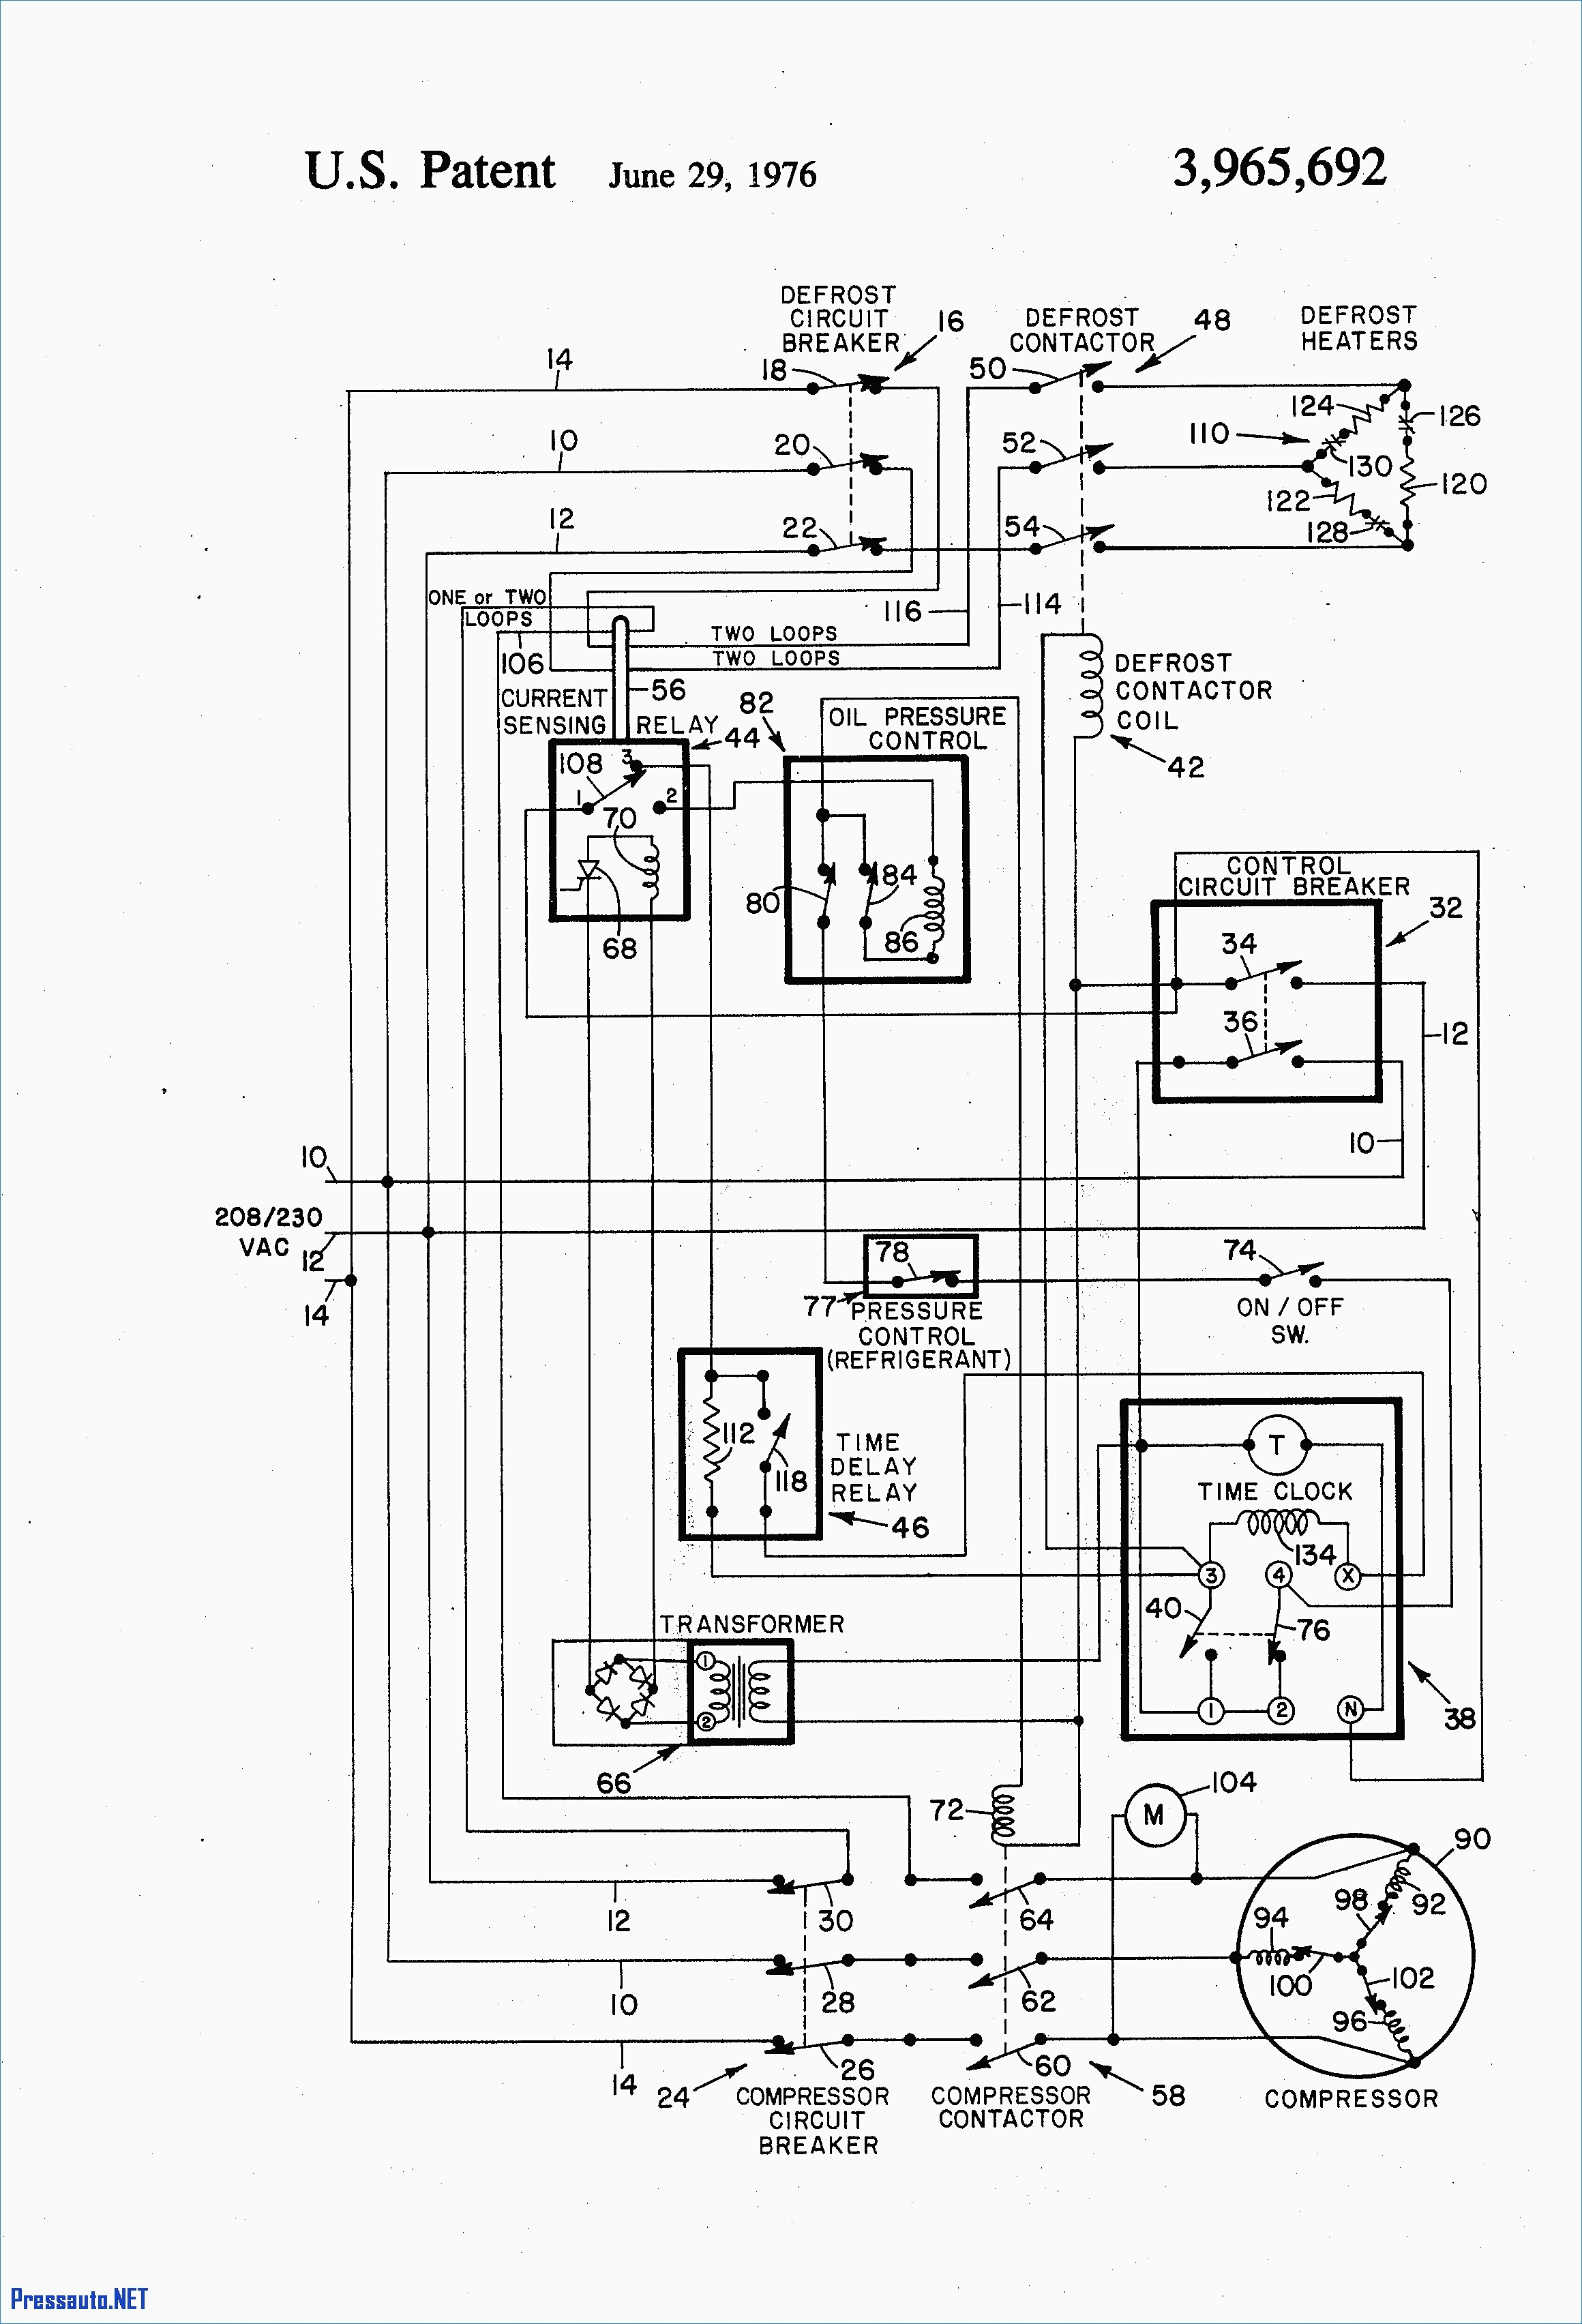 abb vfd wiring diagram free wiring diagram. Black Bedroom Furniture Sets. Home Design Ideas